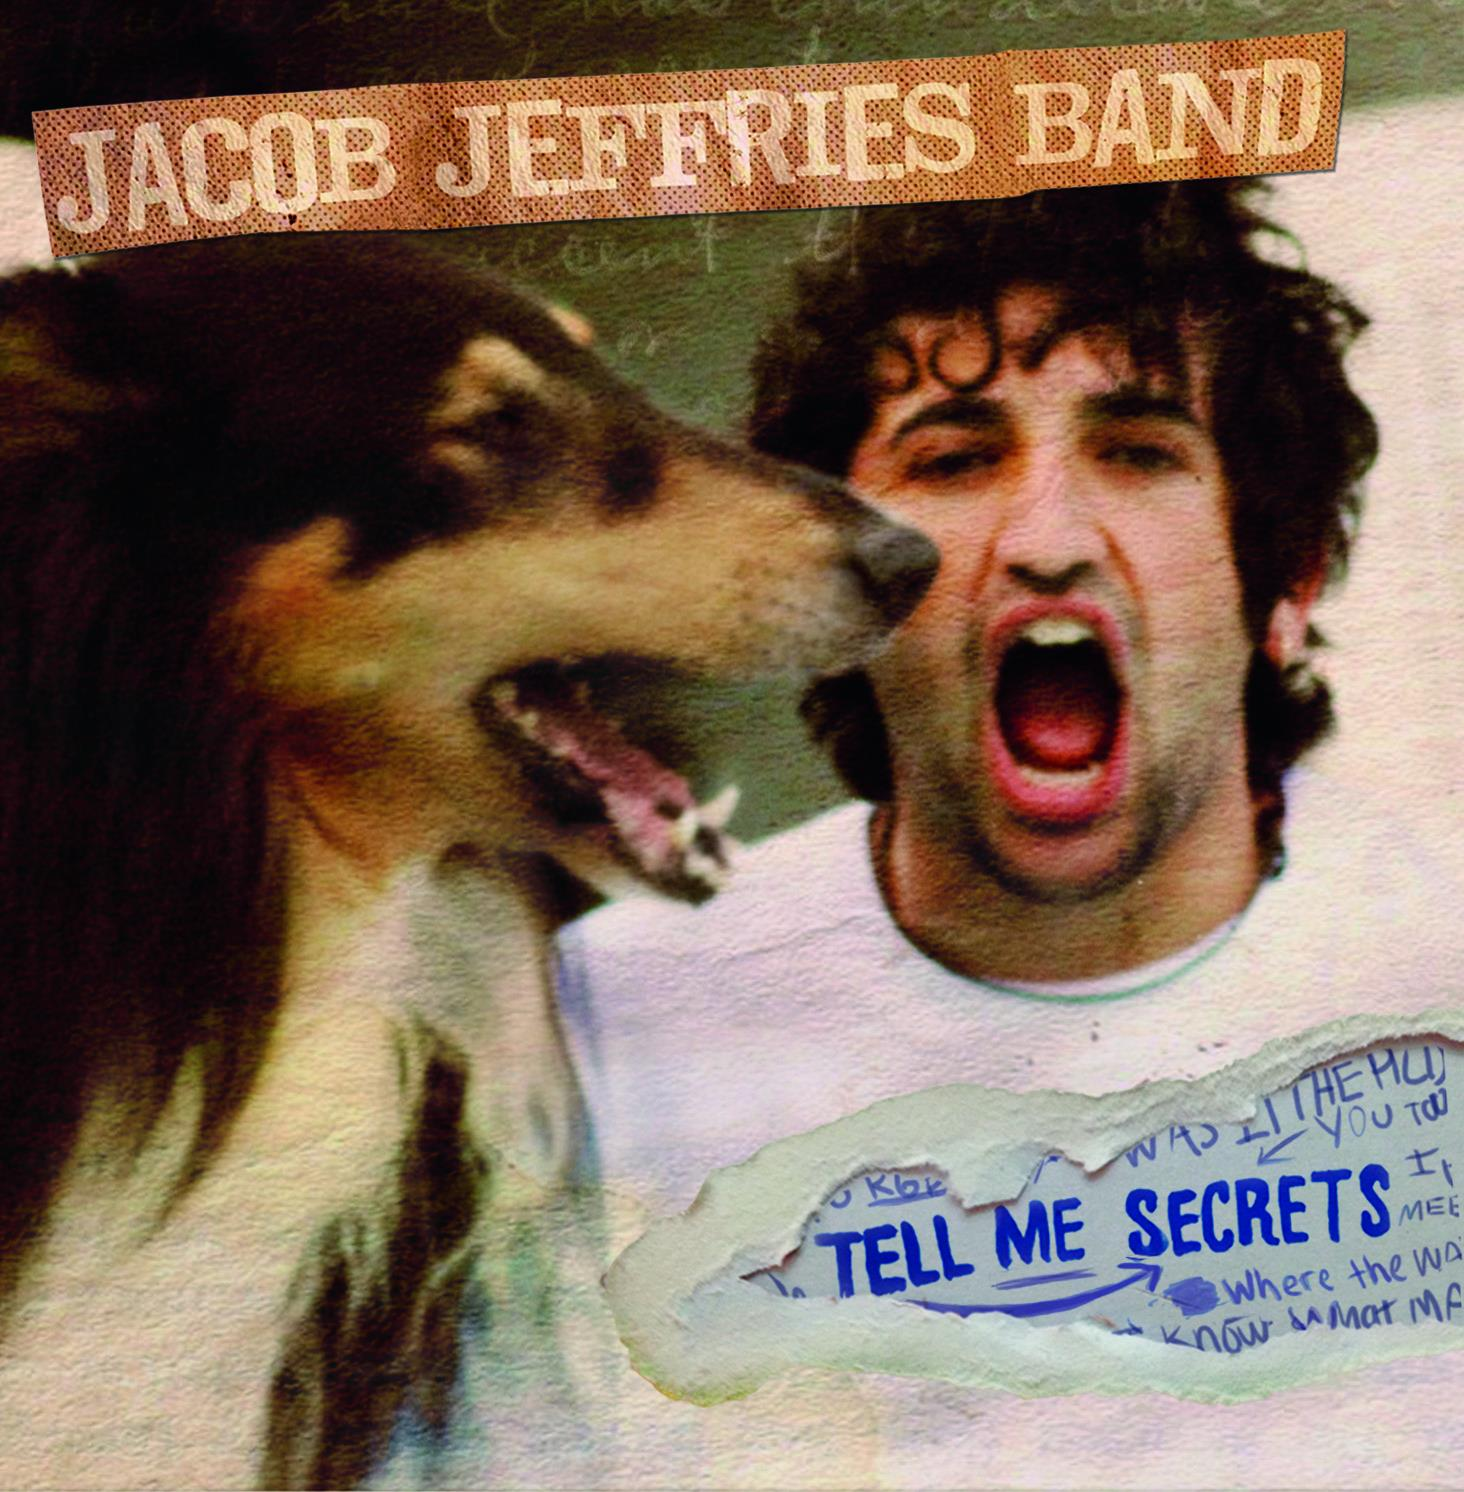 Jacob Jeffries Band | Tell Me Secrets | New Music Review